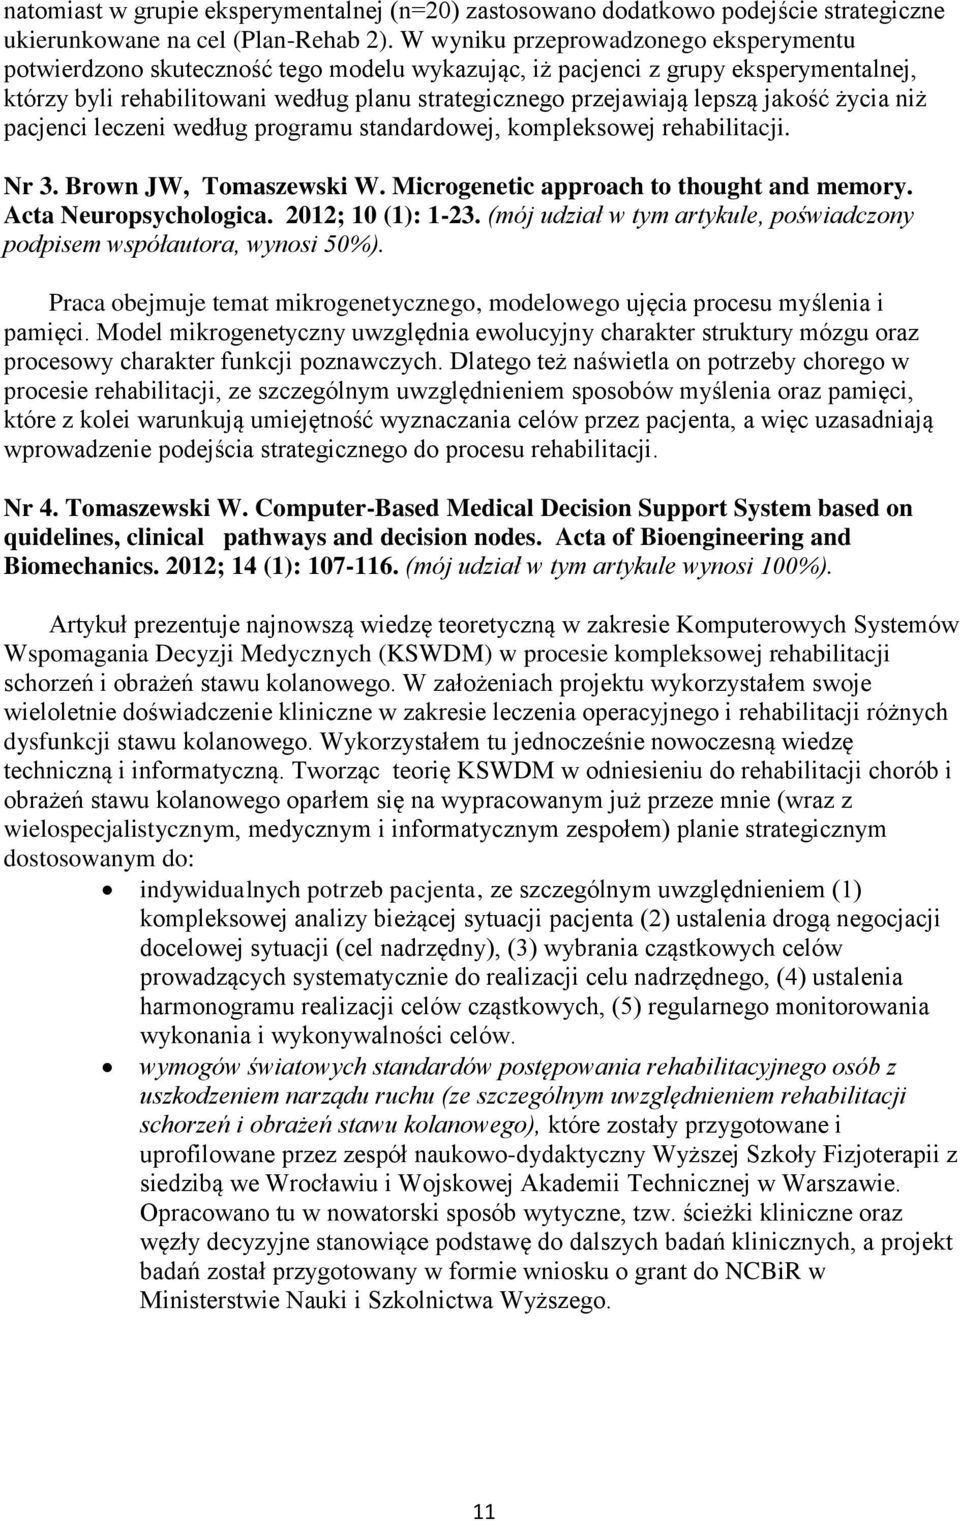 jakość życia niż pacjenci leczeni według programu standardowej, kompleksowej rehabilitacji. Nr 3. Brown JW, Tomaszewski W. Microgenetic approach to thought and memory. Acta Neuropsychologica.